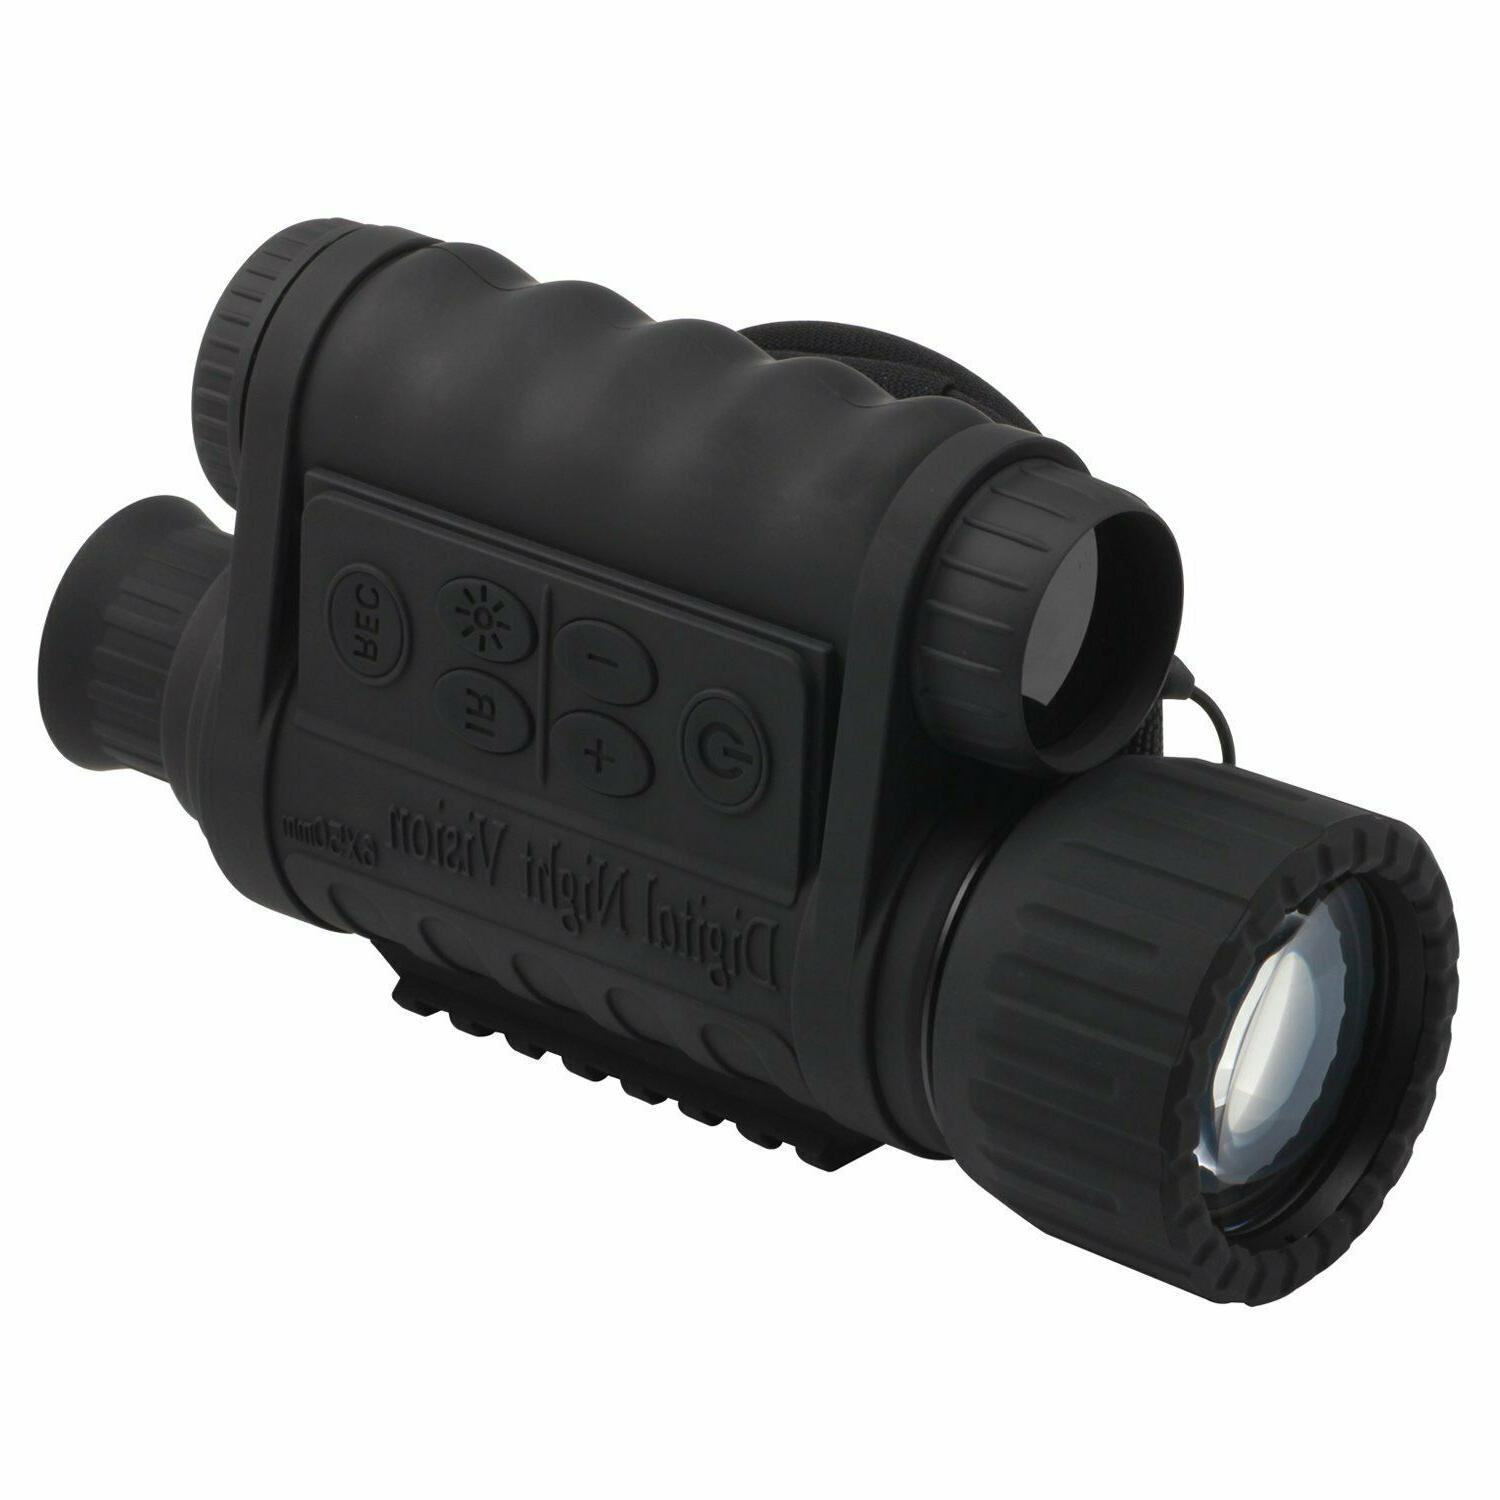 6x50mm hd digital night vision monocular